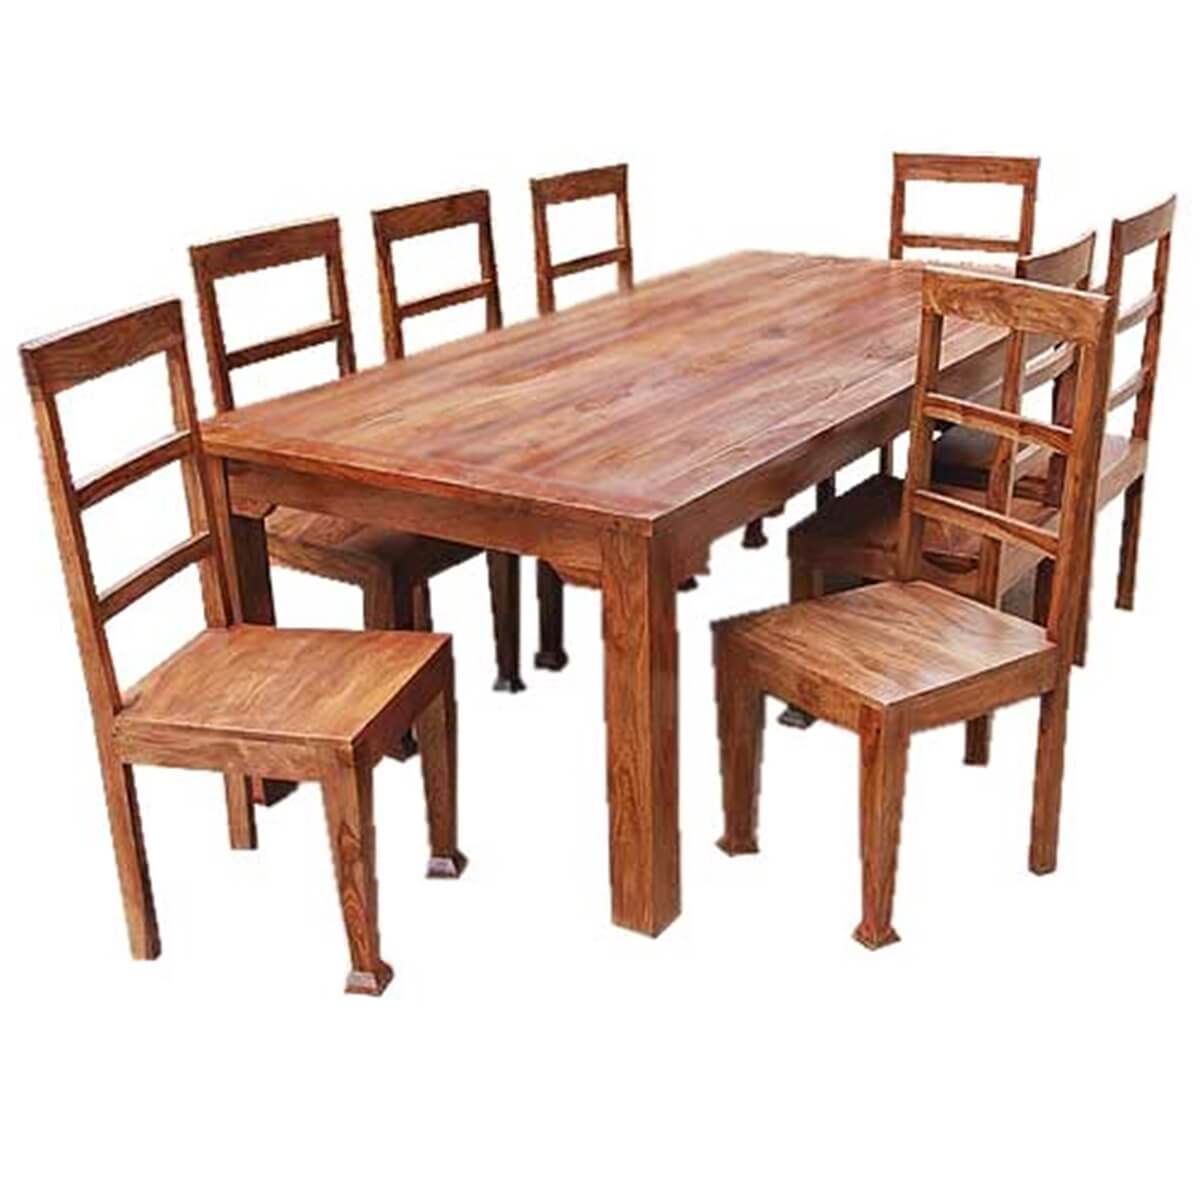 Dining table dining table size 8 people for Small 4 person dining table